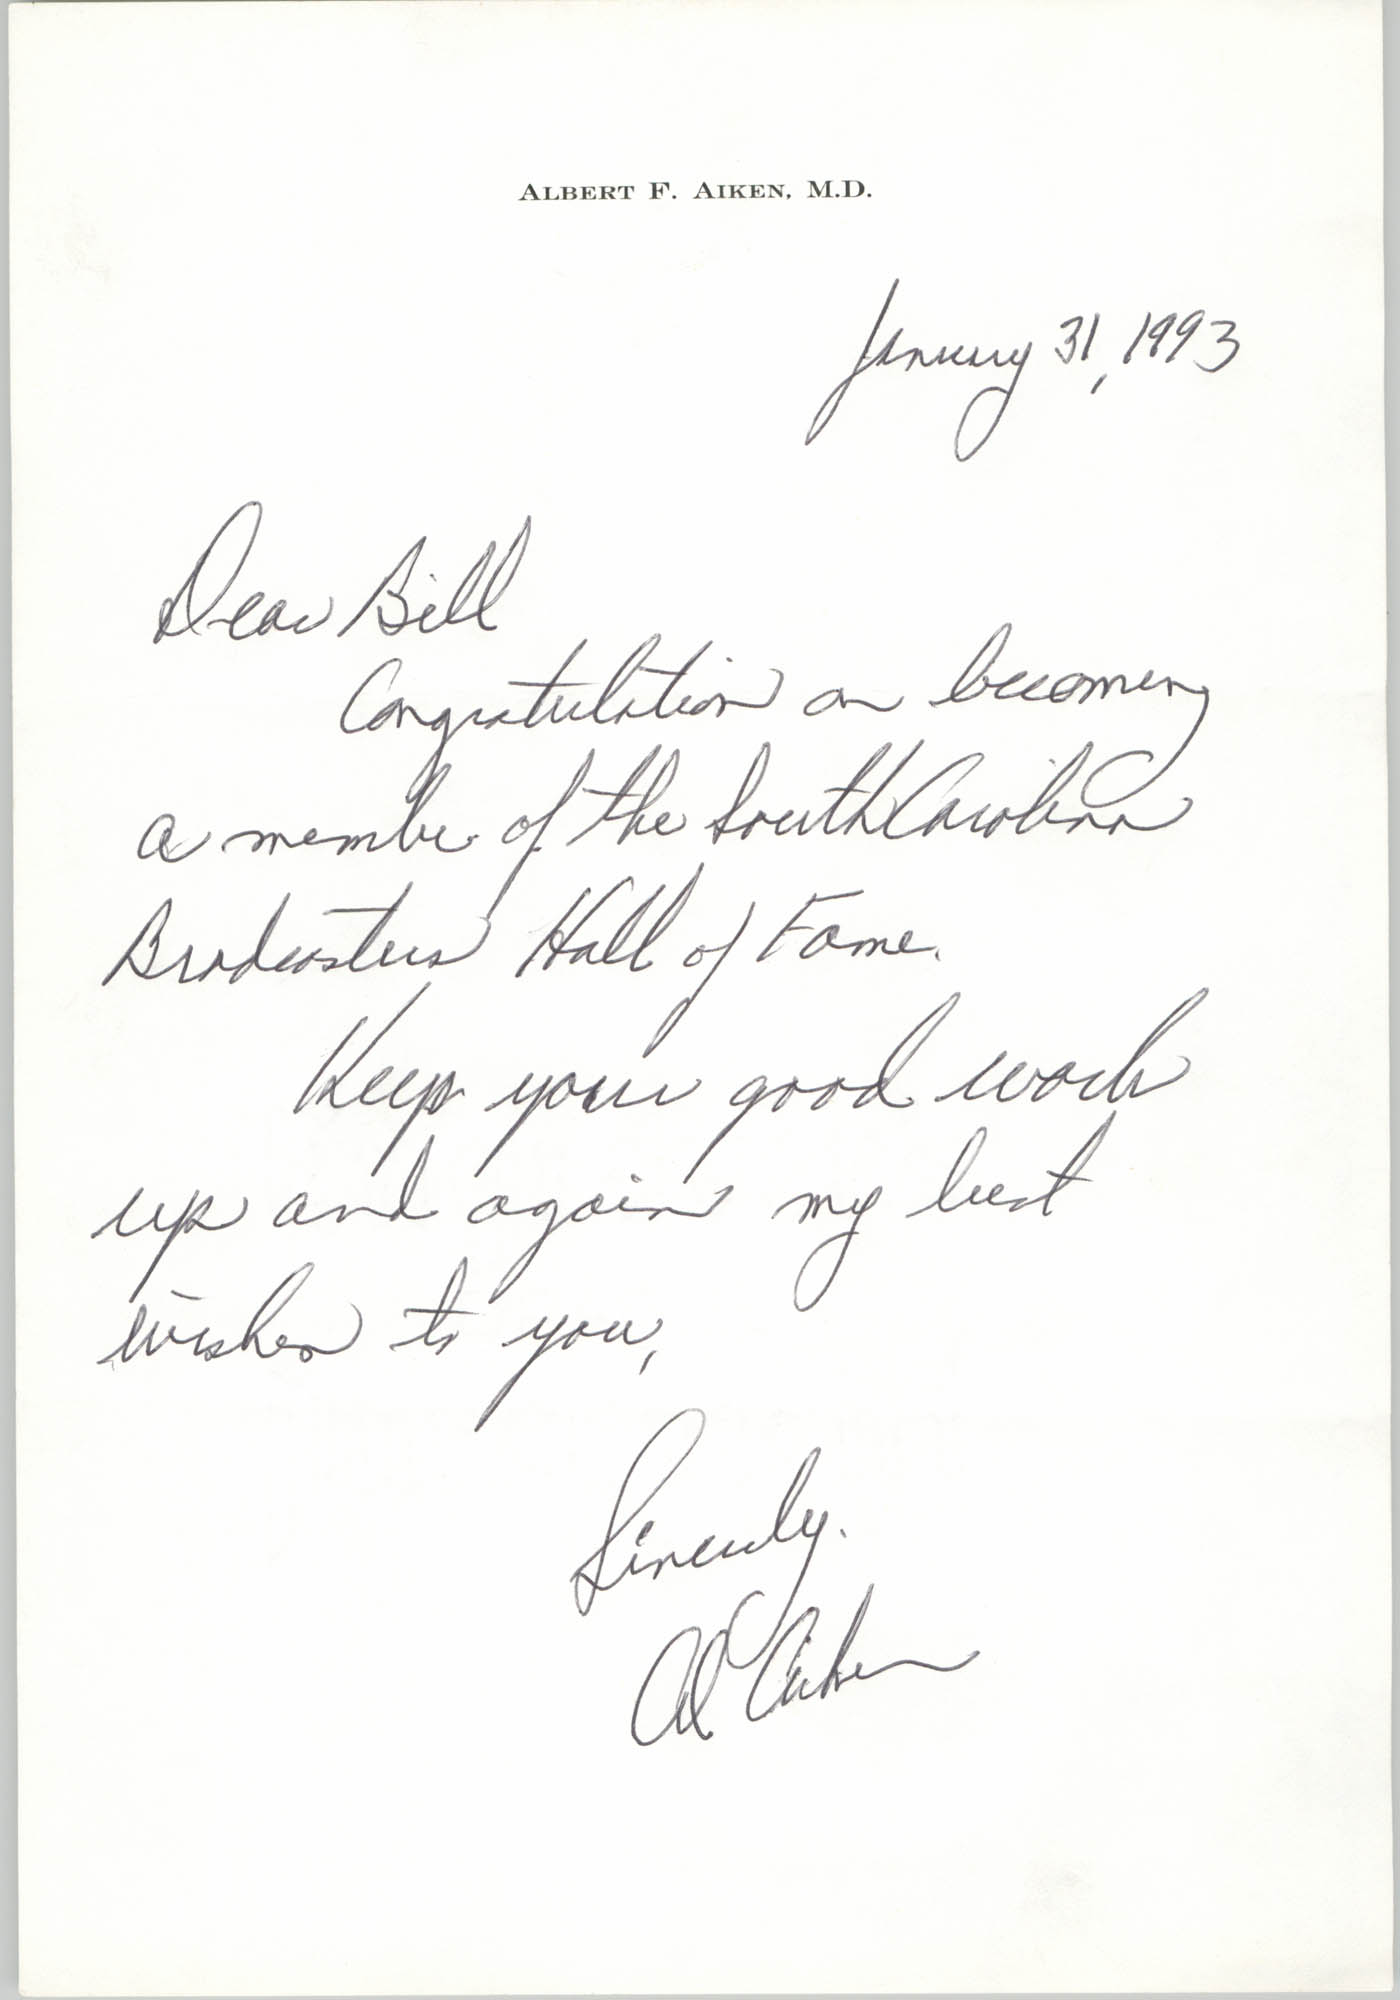 Letter from Albert F. Aiken to William Saunders, January 31, 1993